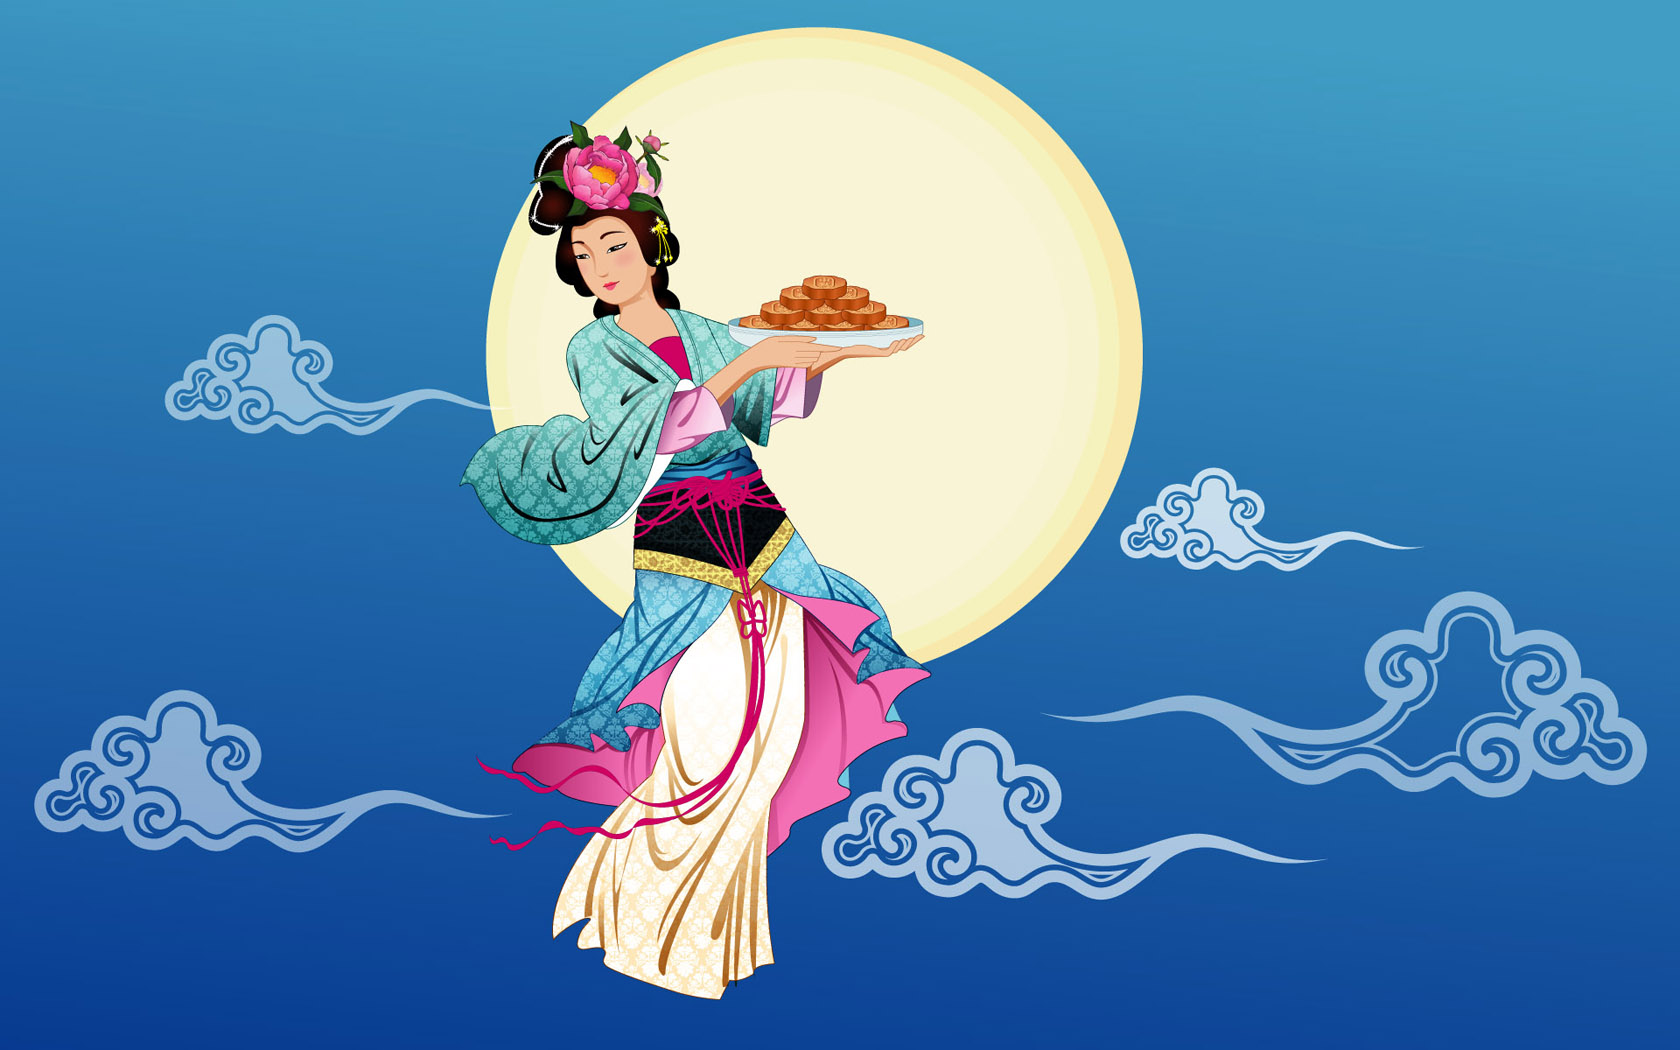 chinese moon festival - HD1680×1050